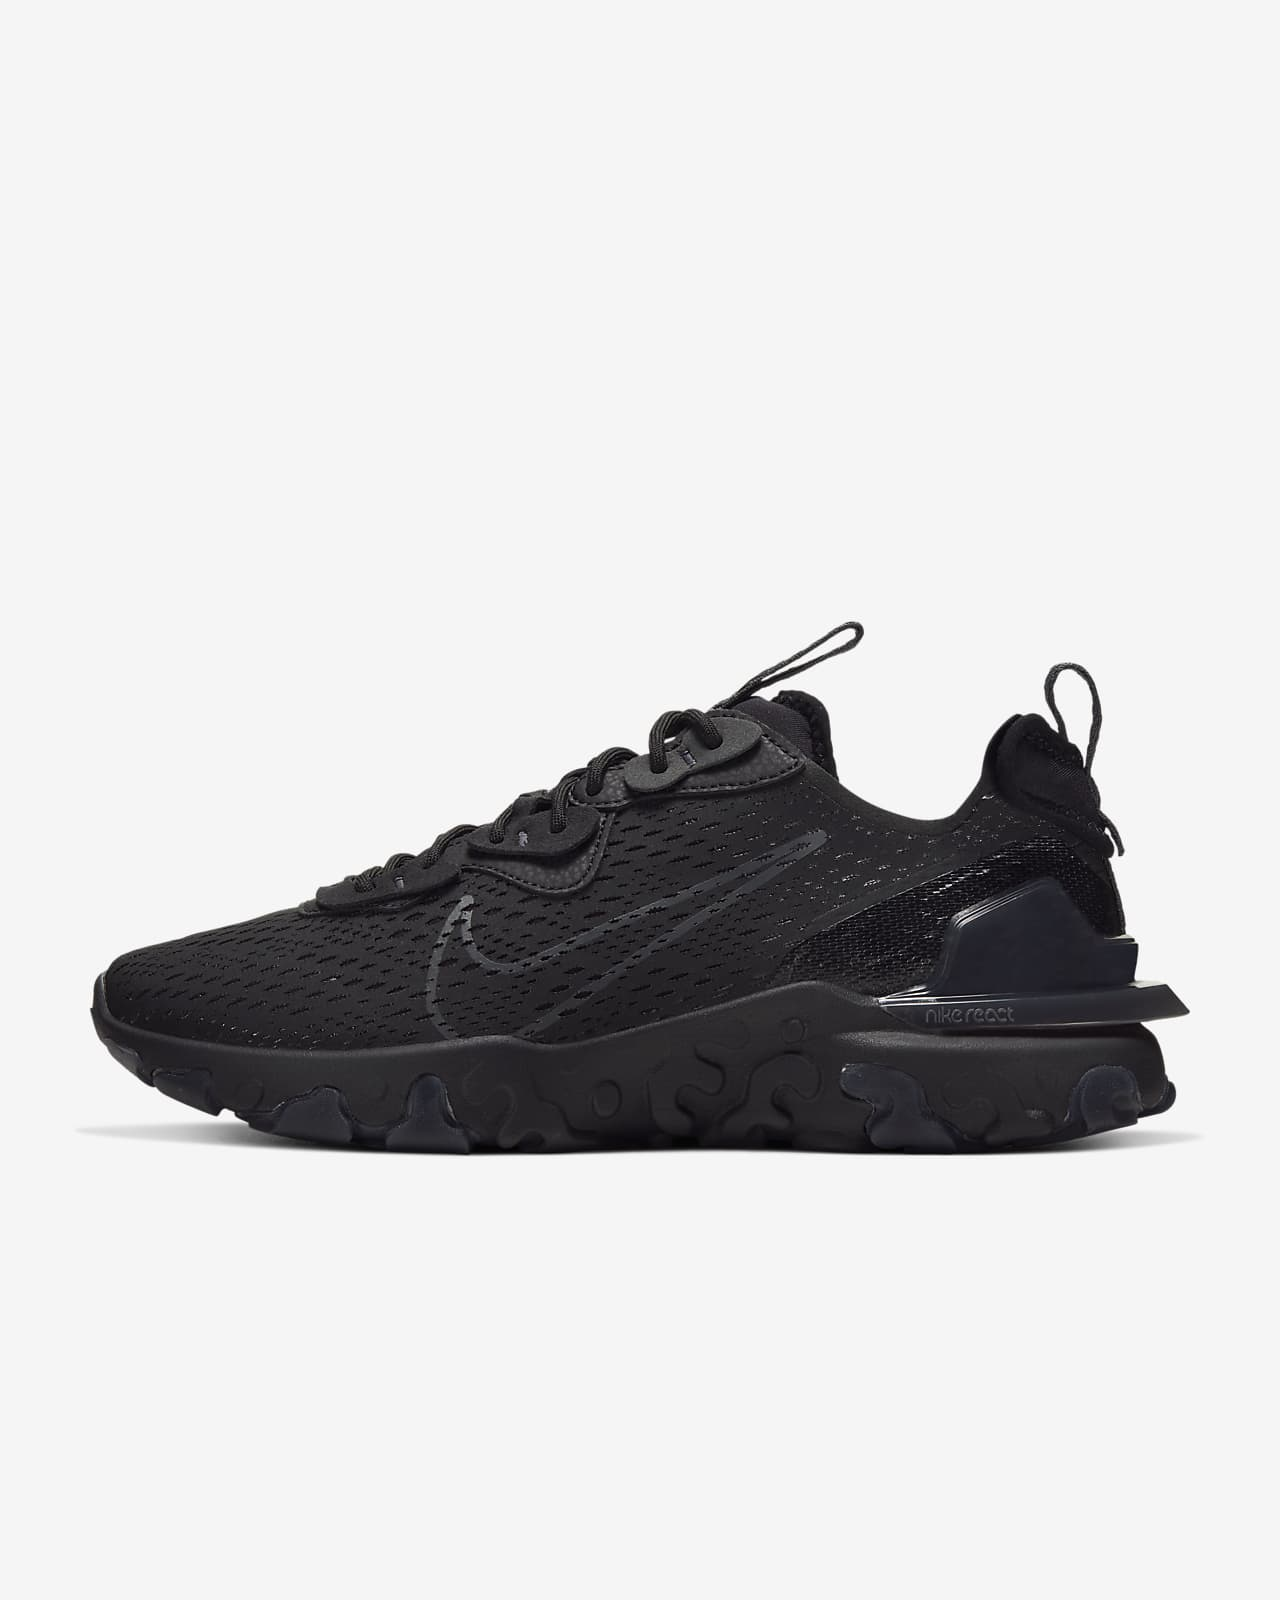 Chaussure Nike React Vision pour Homme